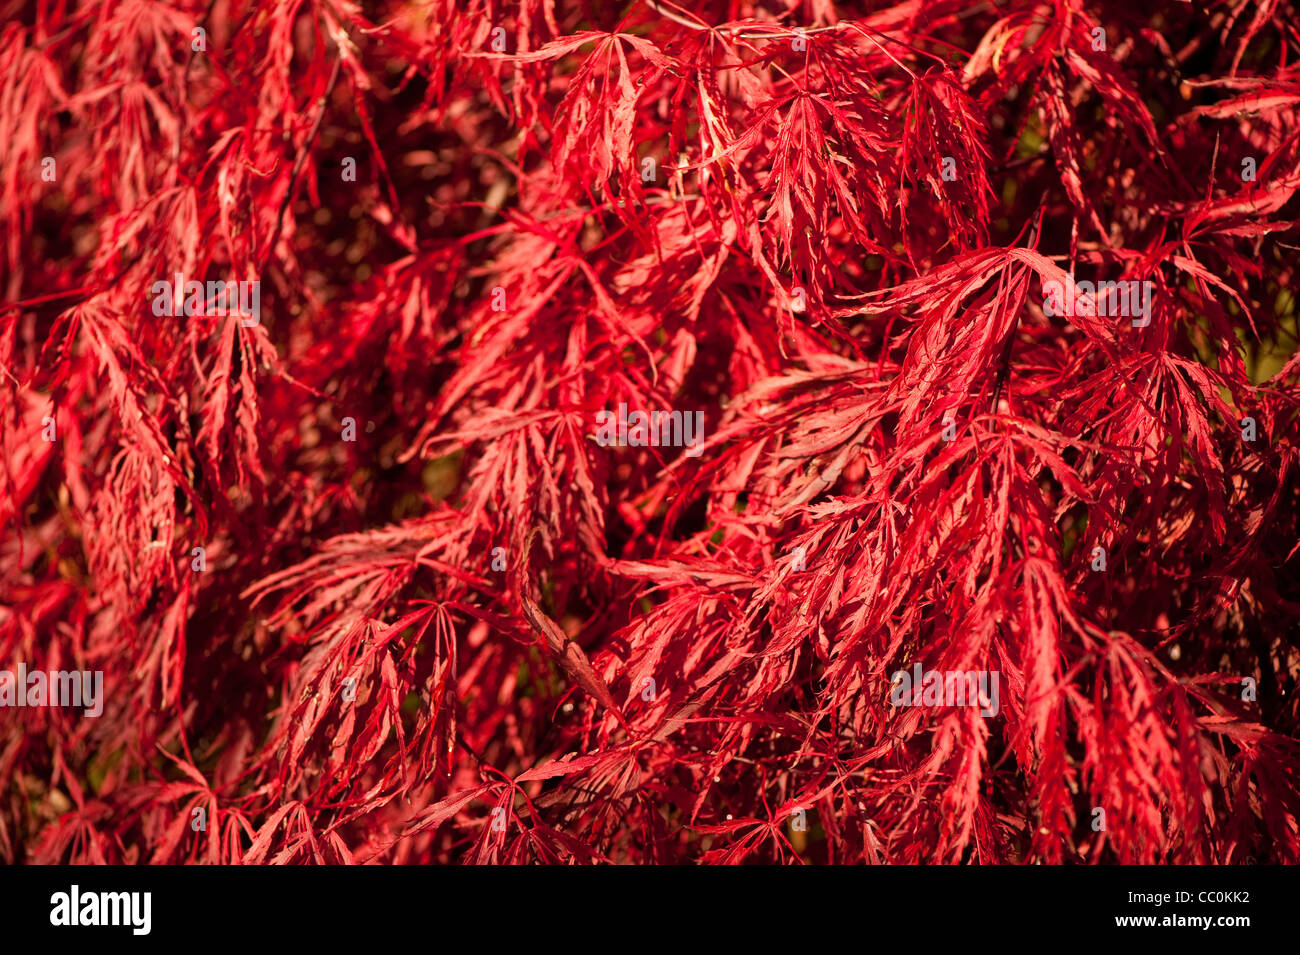 Acer Palmatum Var Dissectum Crimson Queen Japanese Maple Crimson